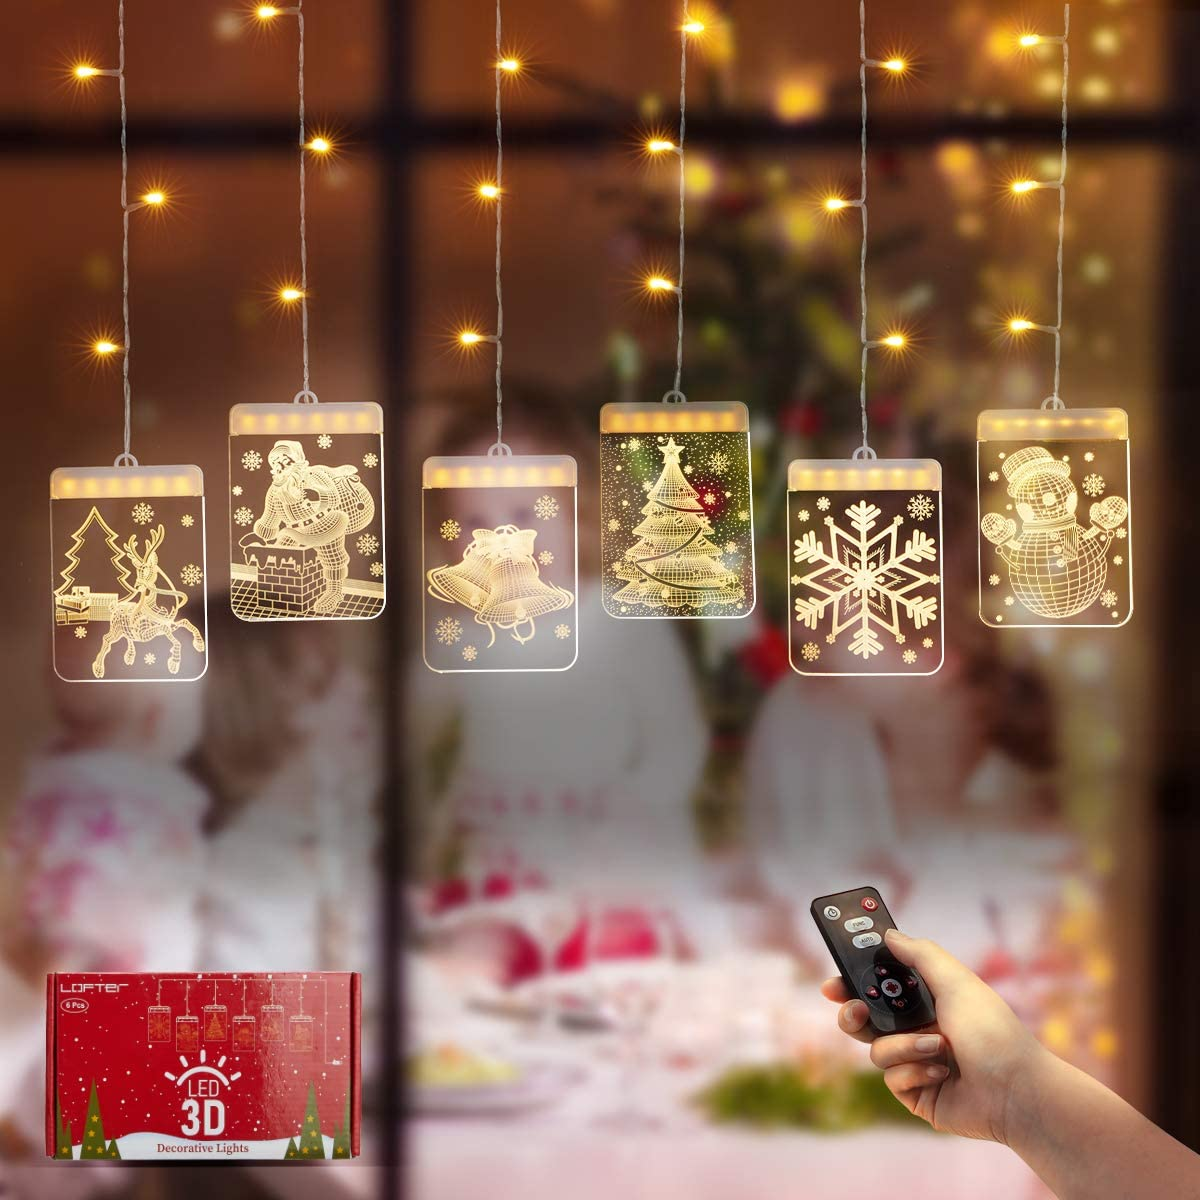 Christmas Decoration LED String Lights, Dimmable Creative 3D Twinkle Hanging Lights with Timer/5 Modes/USB Plug,Warm White Remote Control Curtain Lights for Holiday Window/Fireplace/Wall/Bedroom Decor